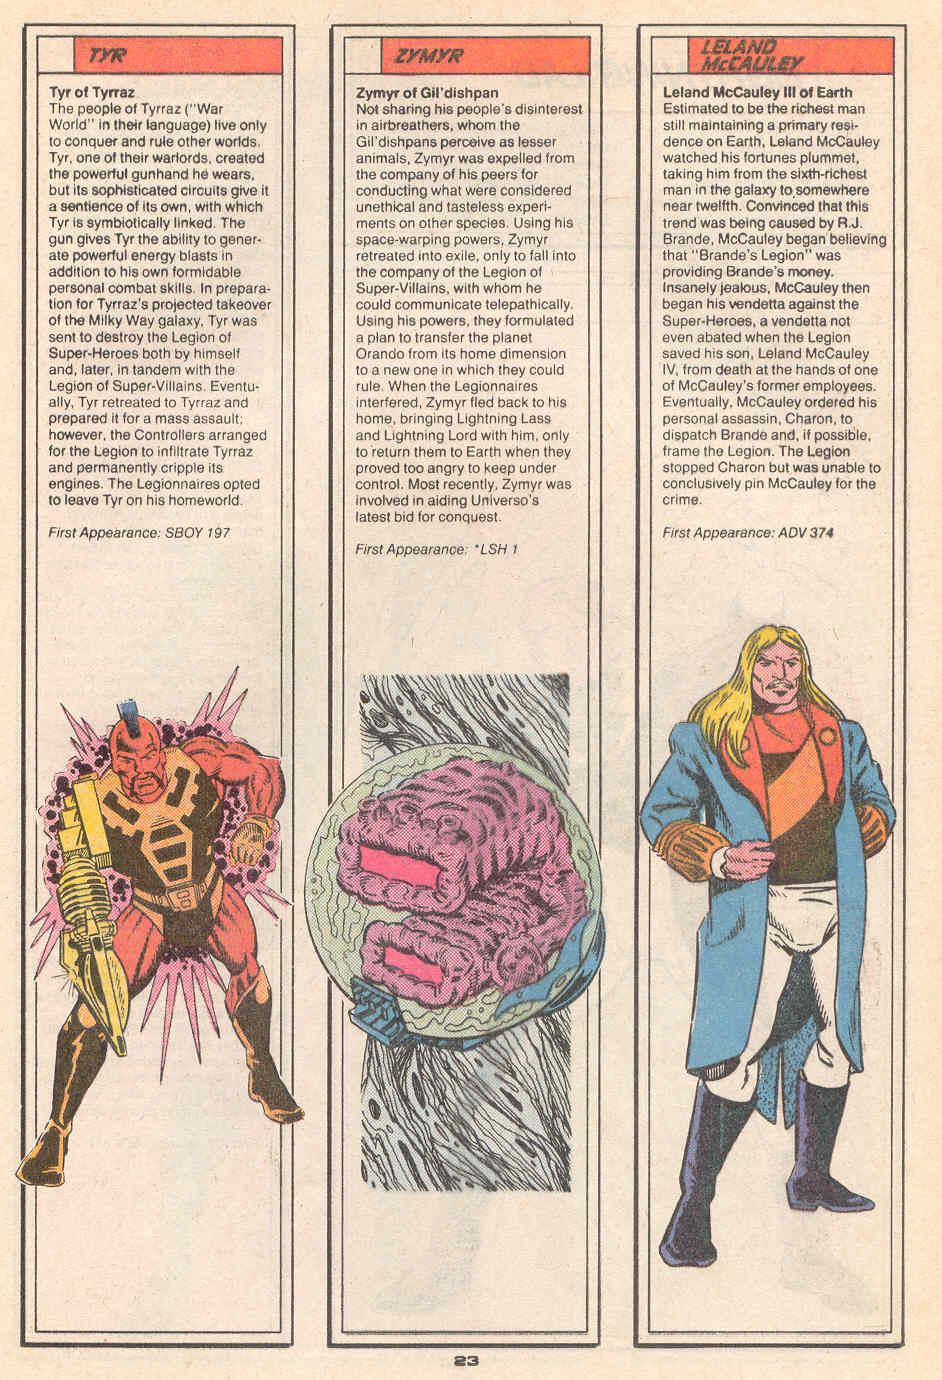 Tyr, Zymyr, and Leland McCauley by Rick Stasi and Robert Campanella - Who's Who in the Legion of Super-Heroes #4